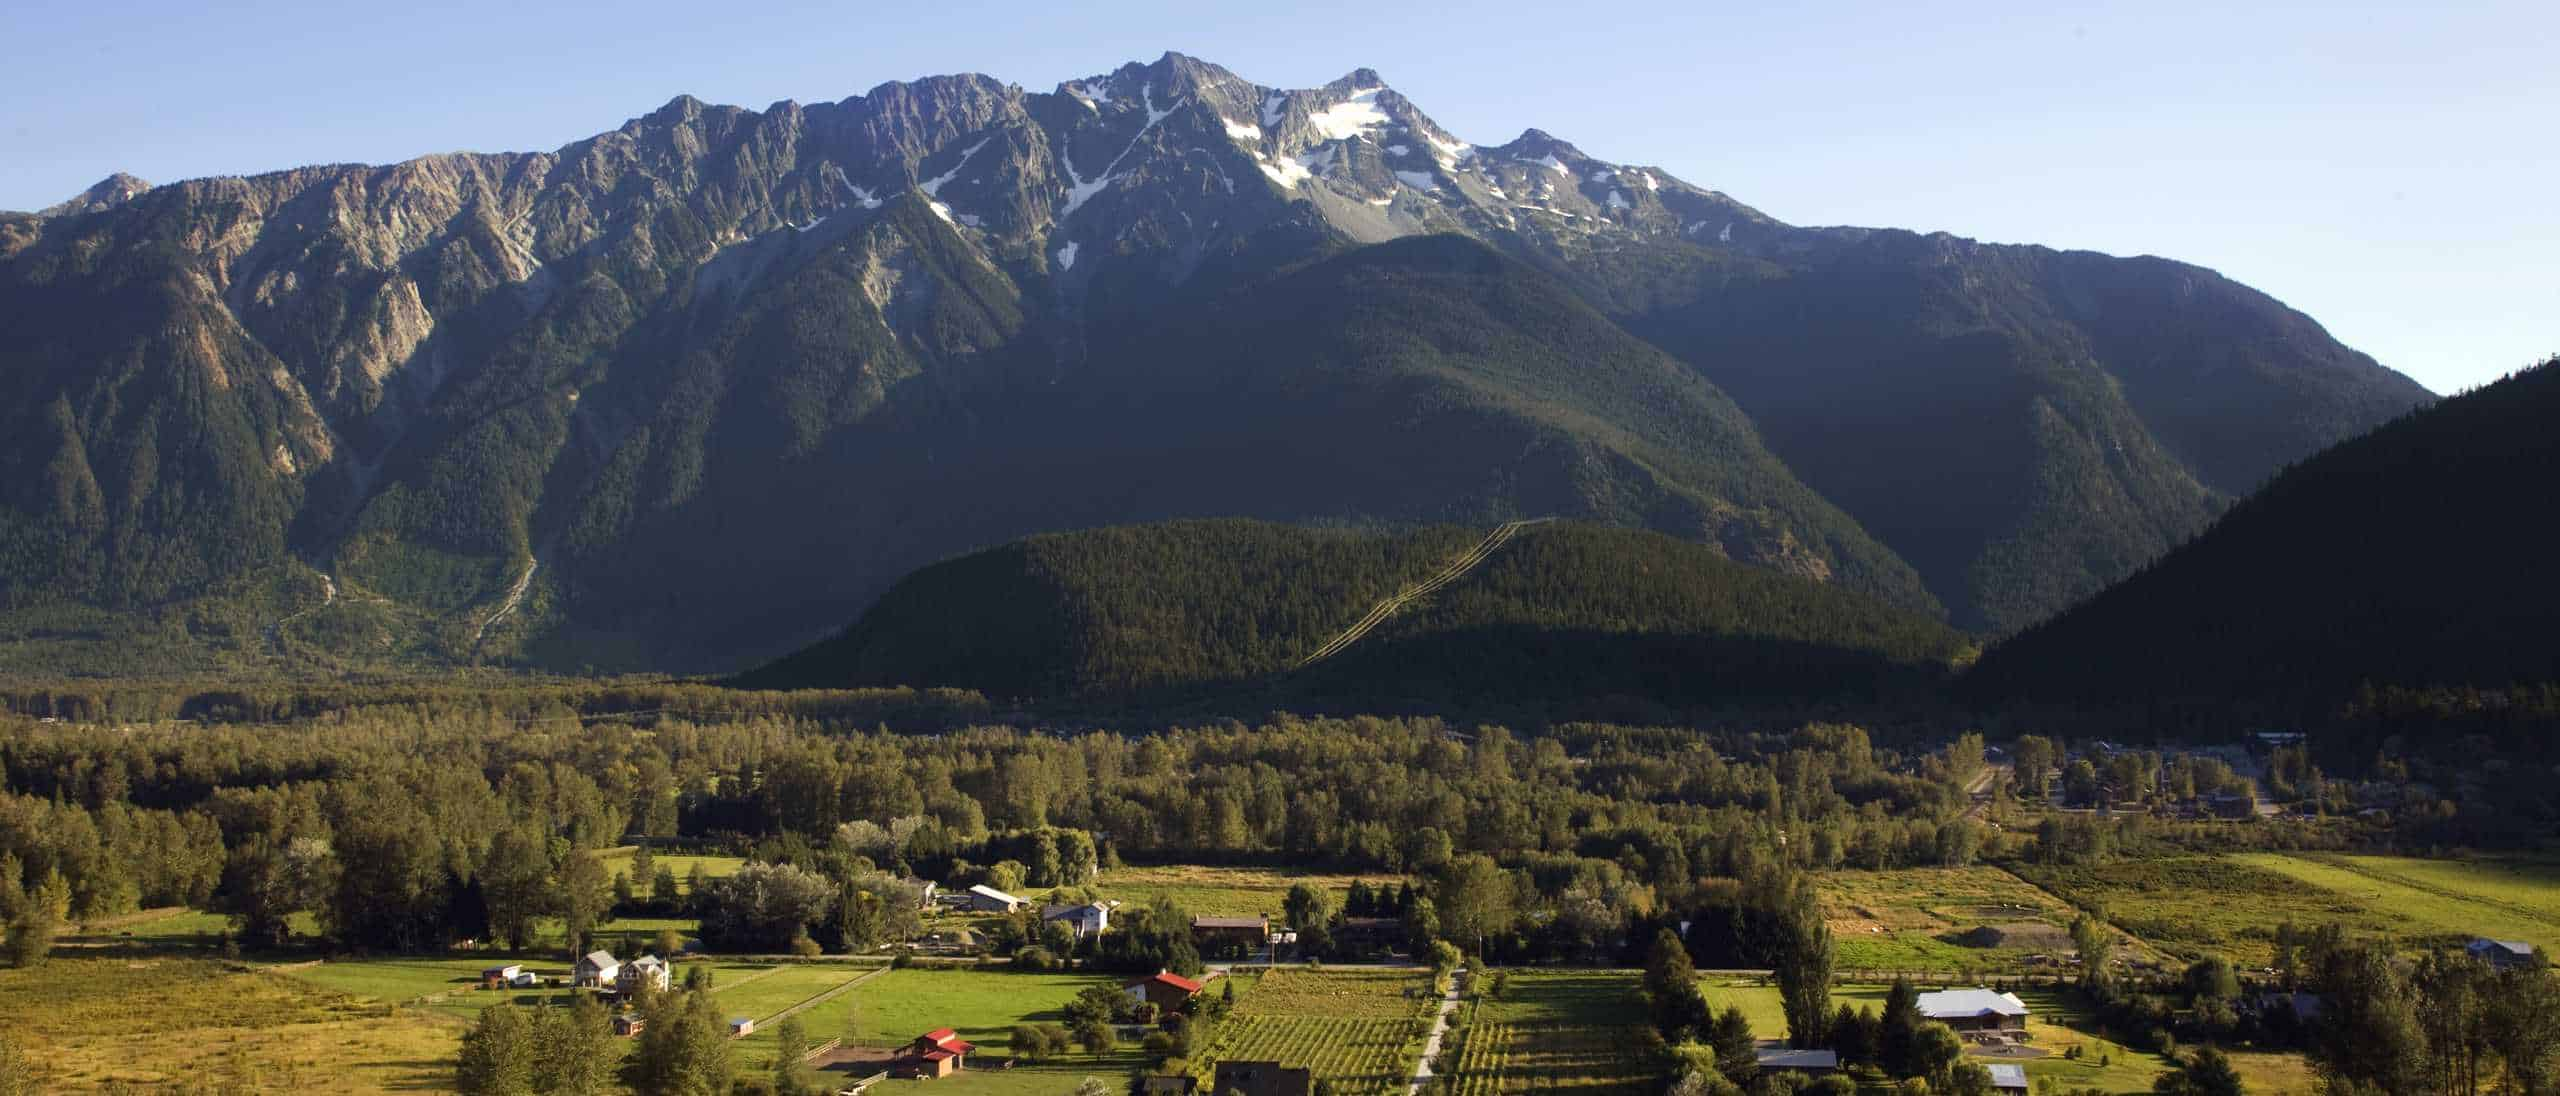 Mt Currie and Village of Pemberton